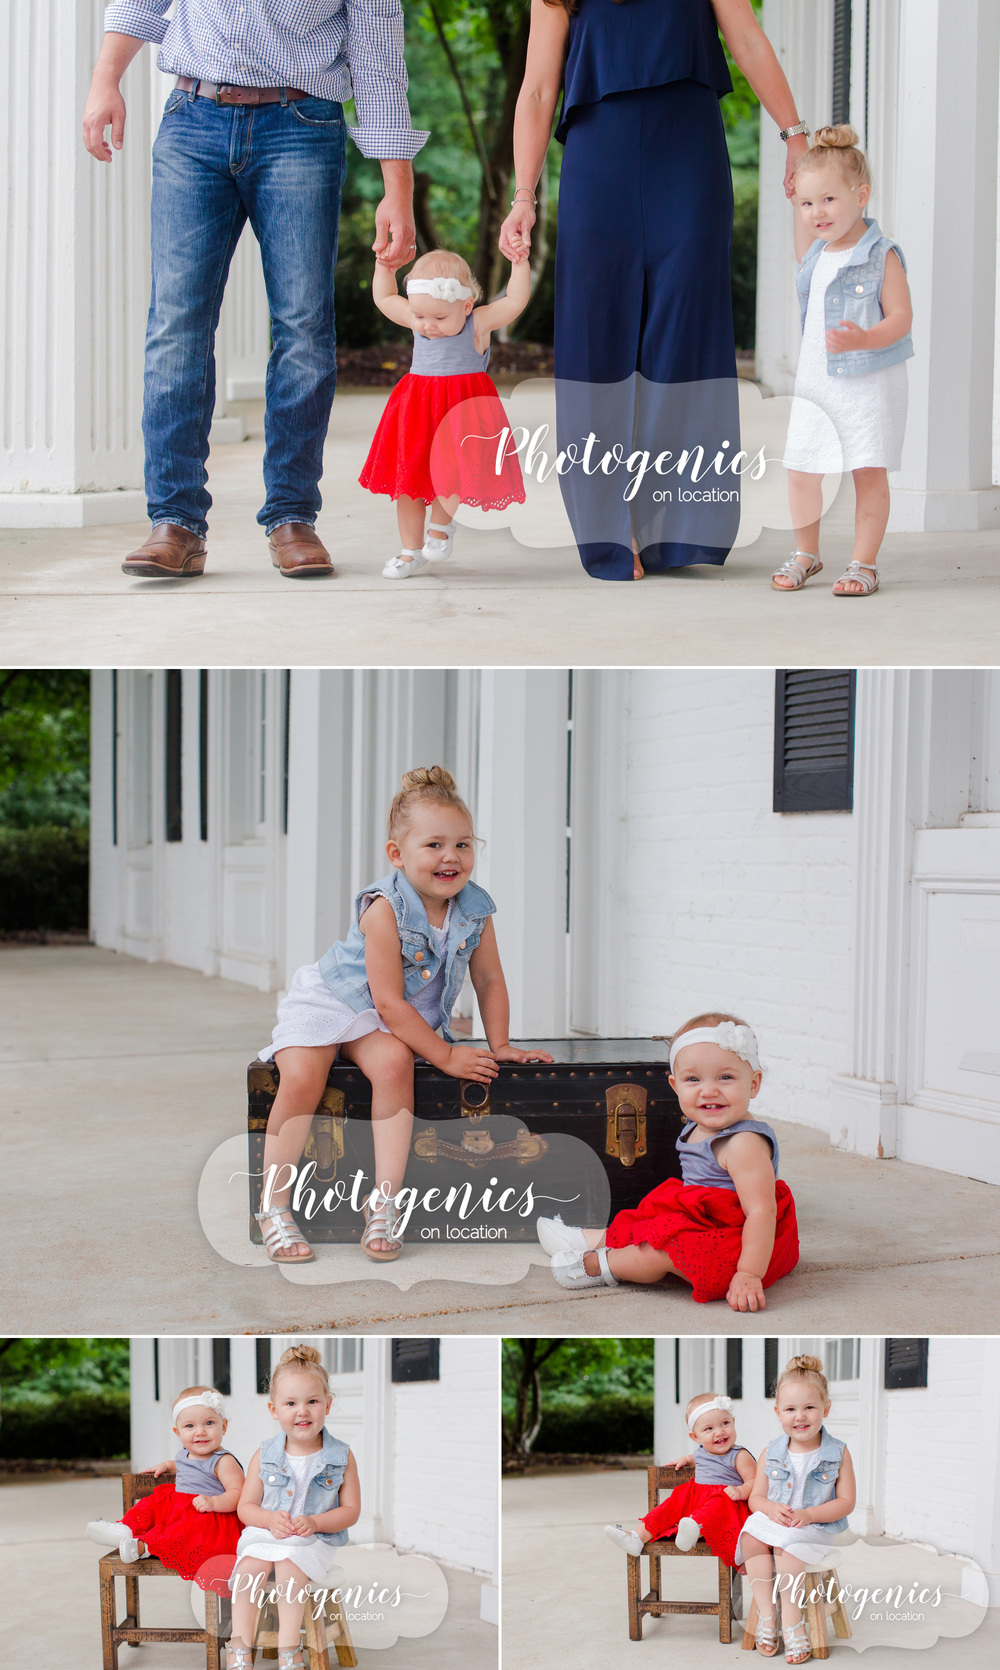 family_session_photography_rain_ideas_family_of_four_pictures_dog_12months_siblings 2.jpg